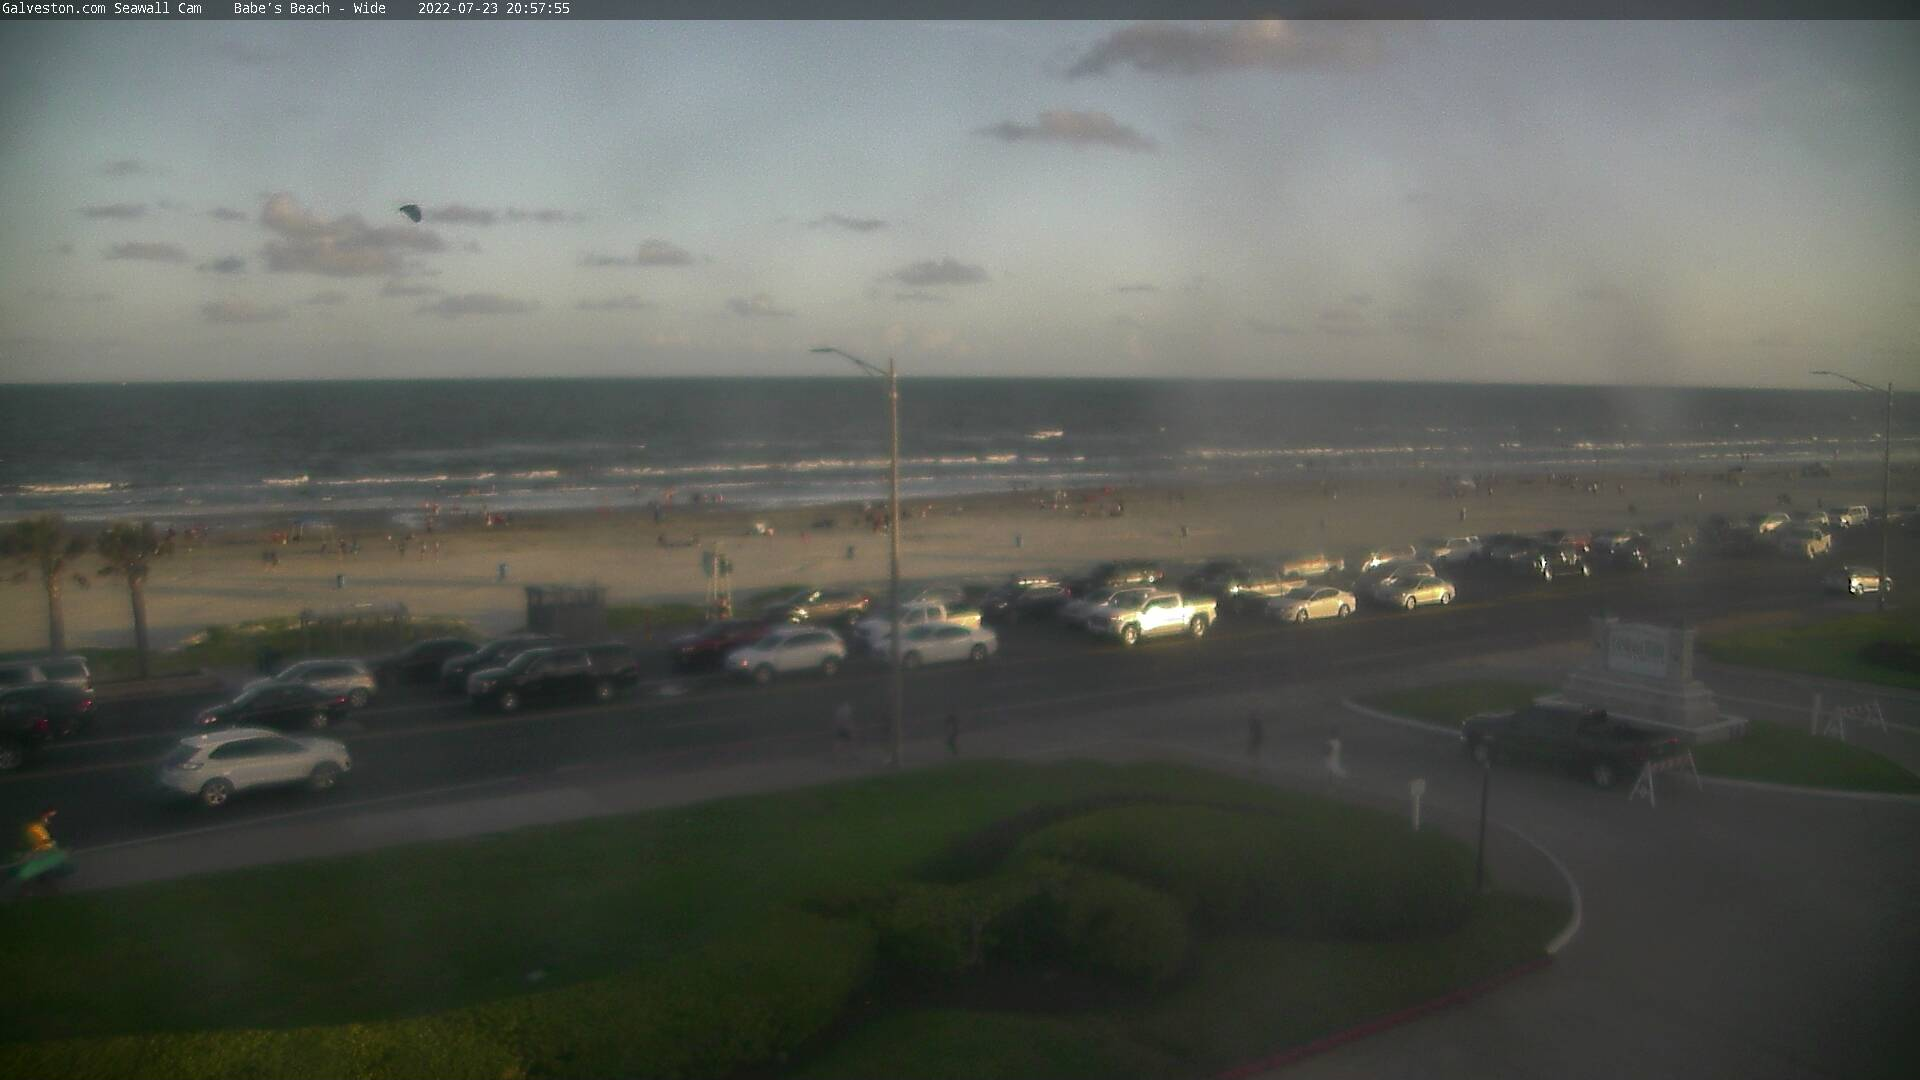 GALVESTON COM: Seawall Video Web Cam Live from Galveston, Texas